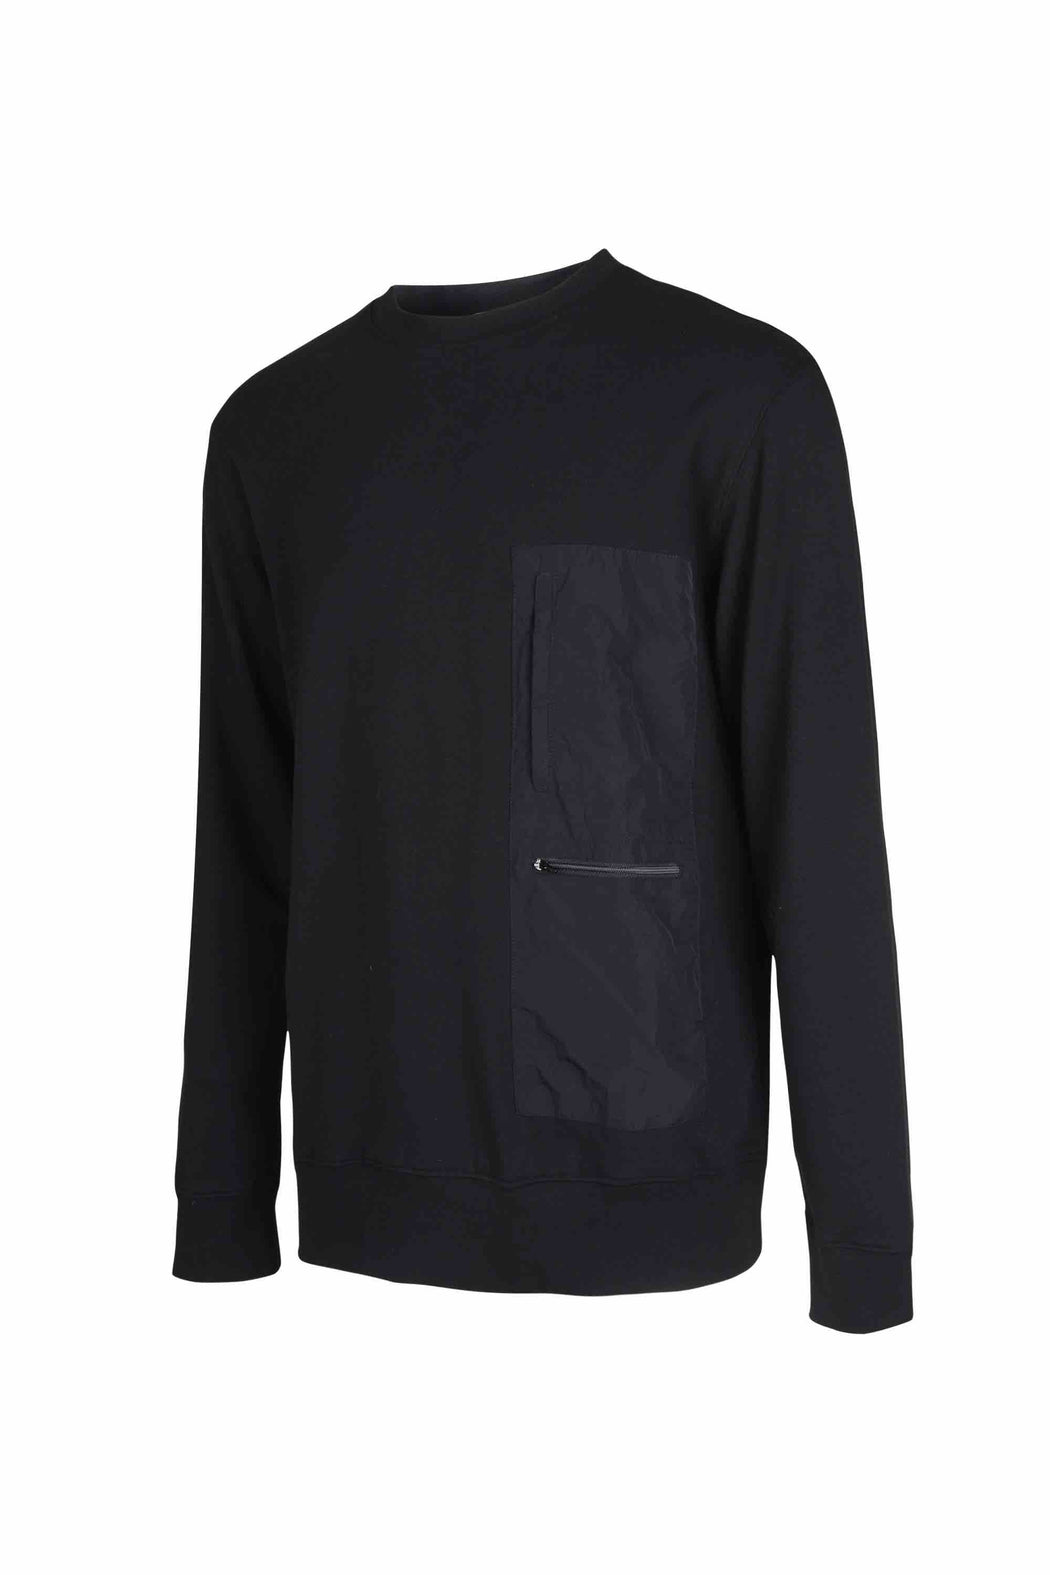 Side view of Men Nylon Pocket Blocked Sweatshirt, made with organic cotton in Black